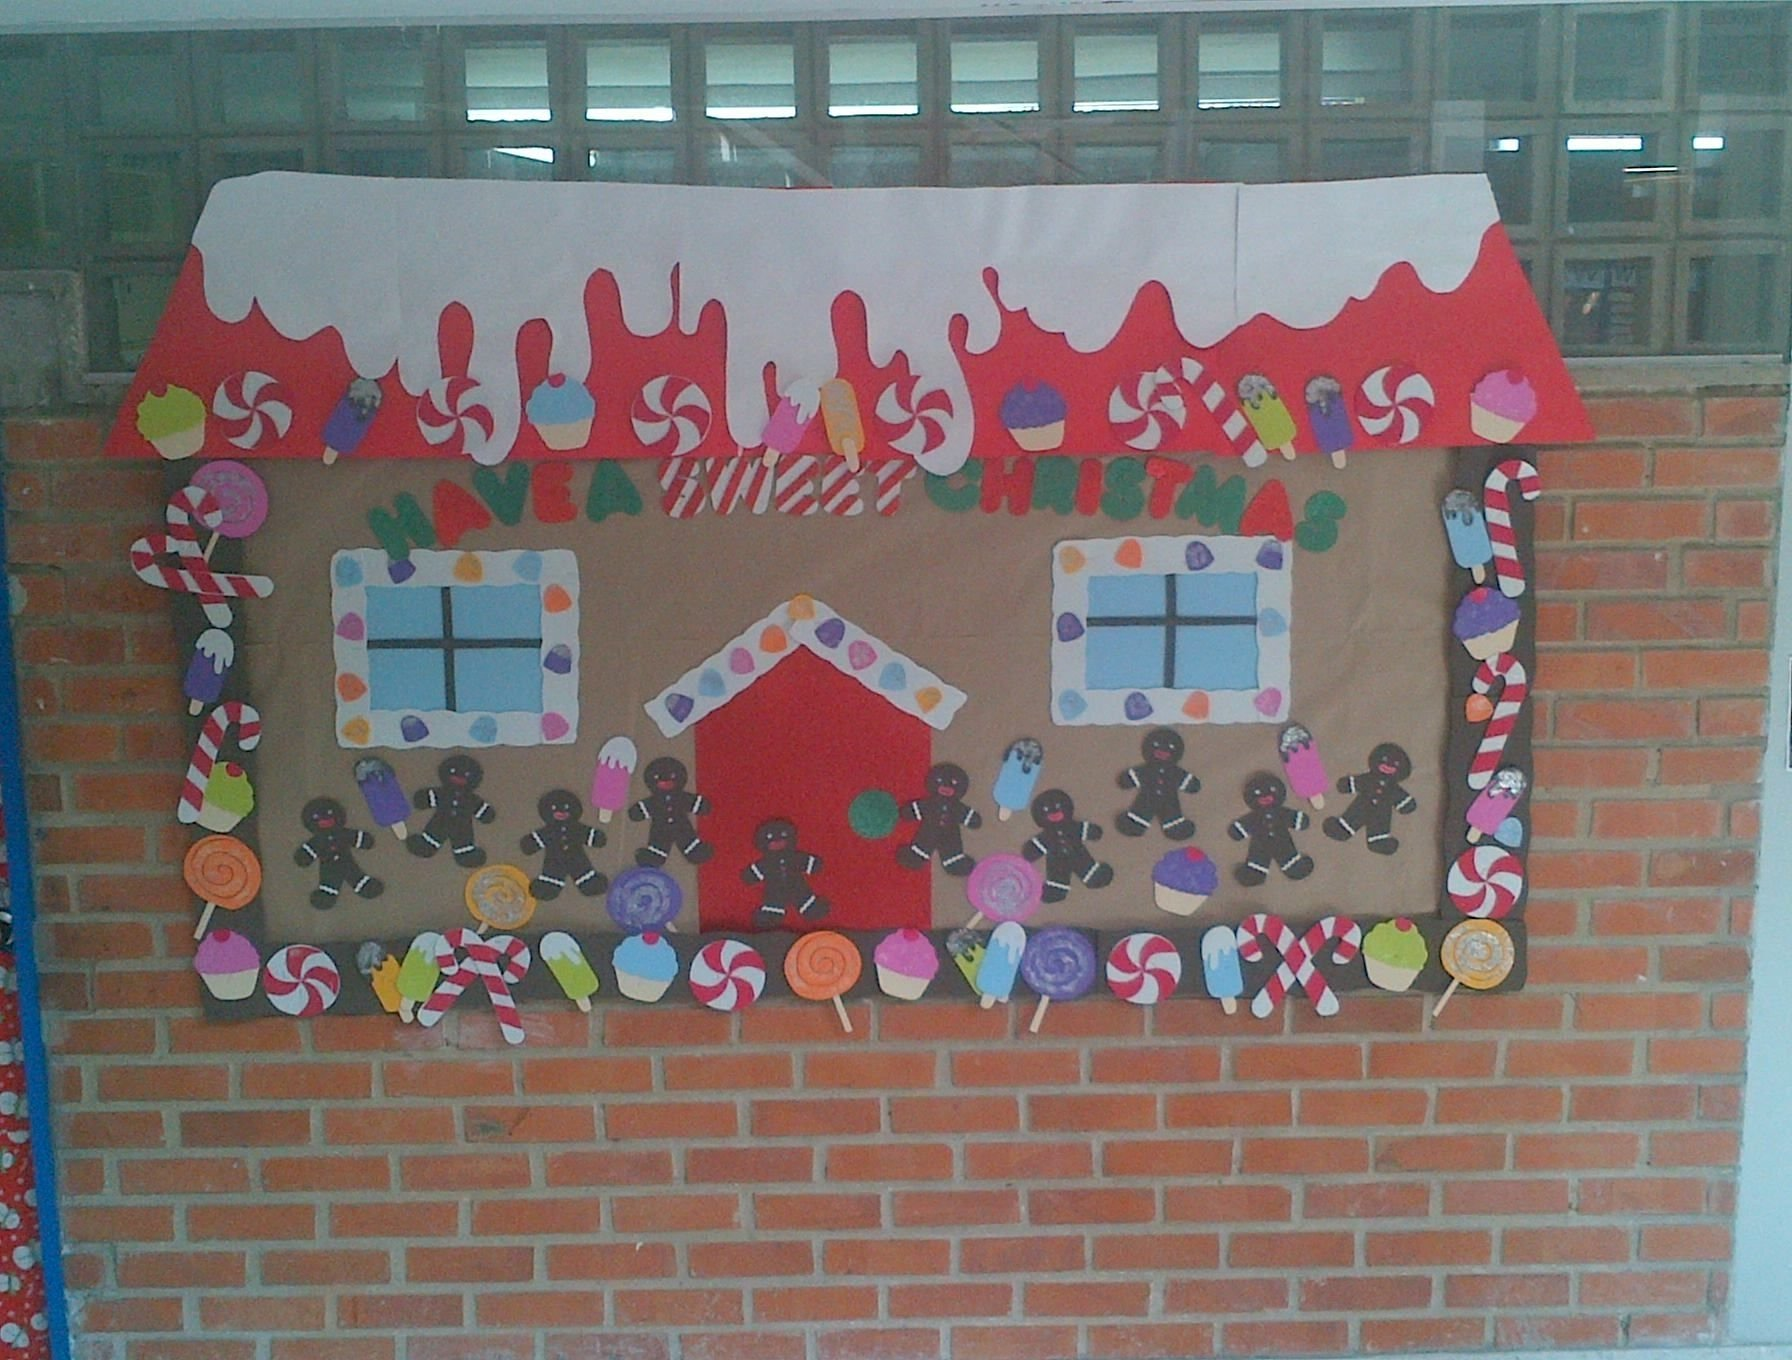 10 Unique Christmas Classroom Bulletin Board Ideas christmas bulletin boardjust make the b board into the house 2 2020